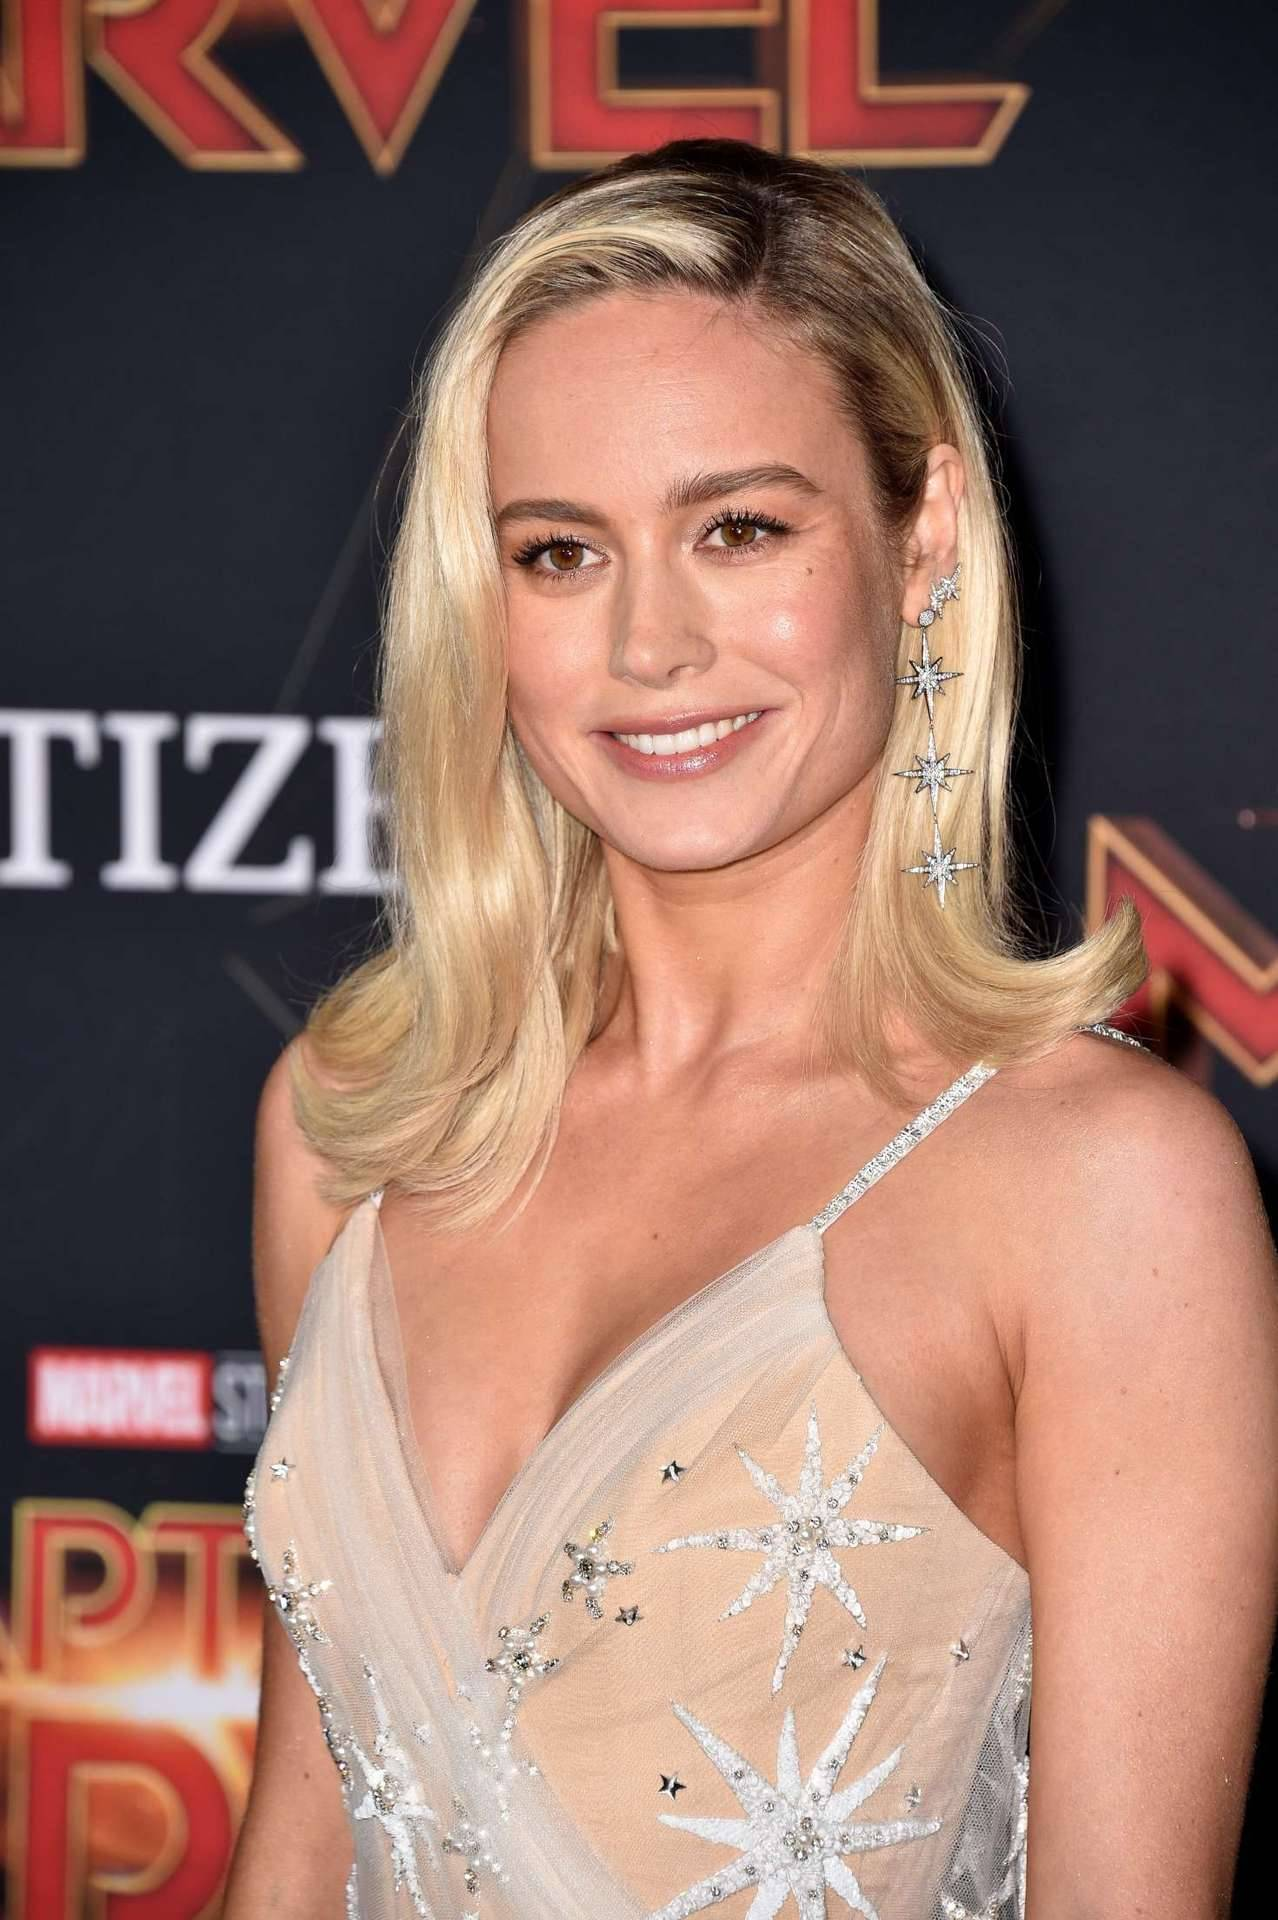 Brie Larson Captain Marvel World Premiere March 4, 2019